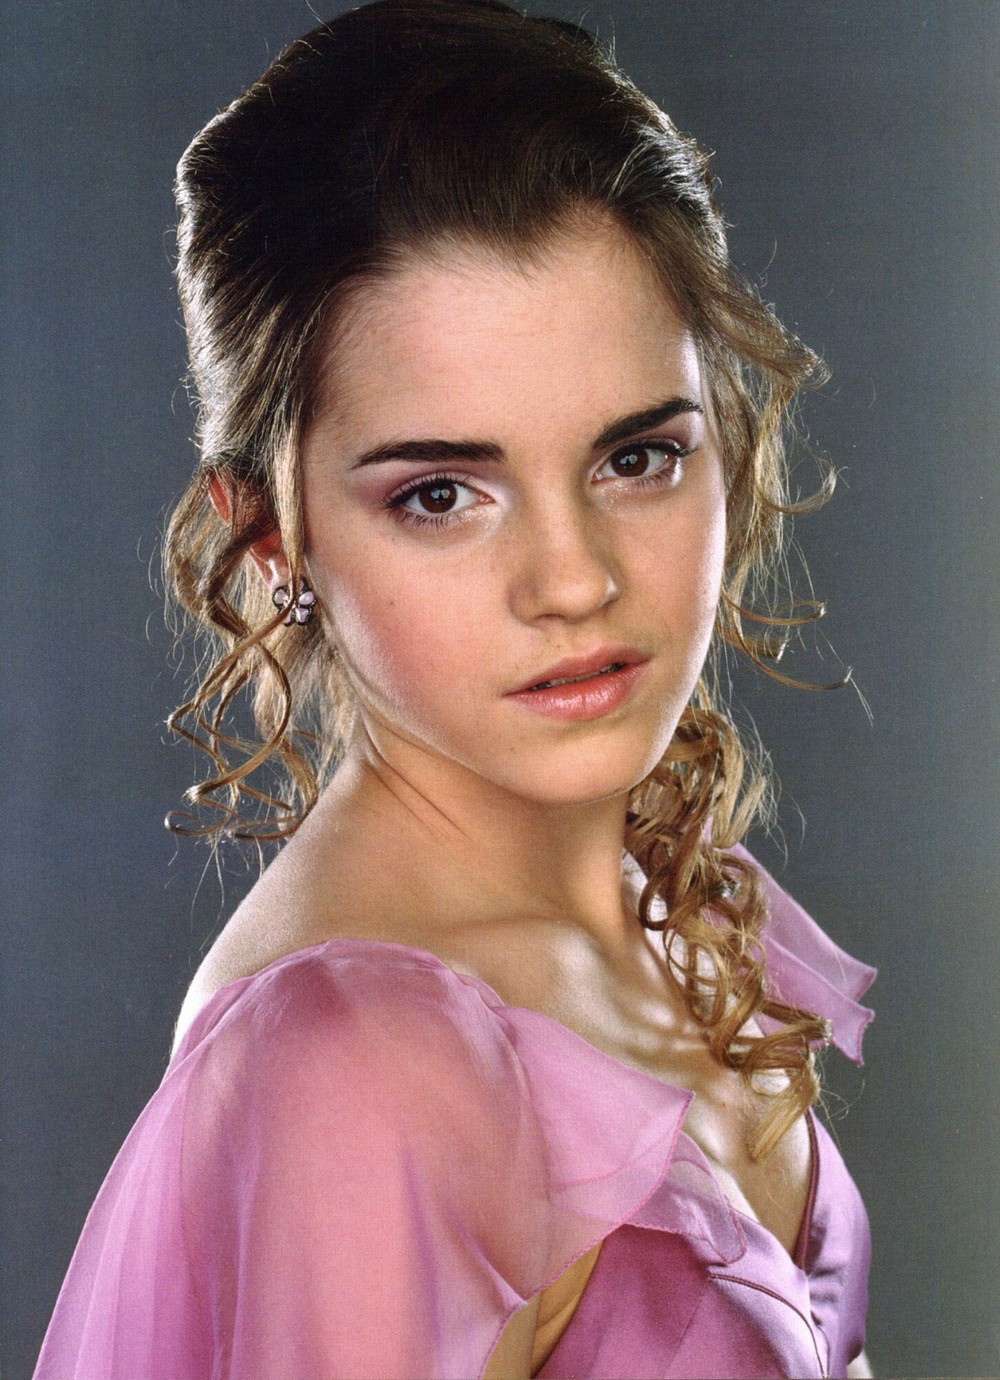 "<a href=""http://www.totallyemmawatson.com/gallery/acting-career/harry-potter-and-the-globet-of-fire/photoshoot"">Photoshoot</a>"